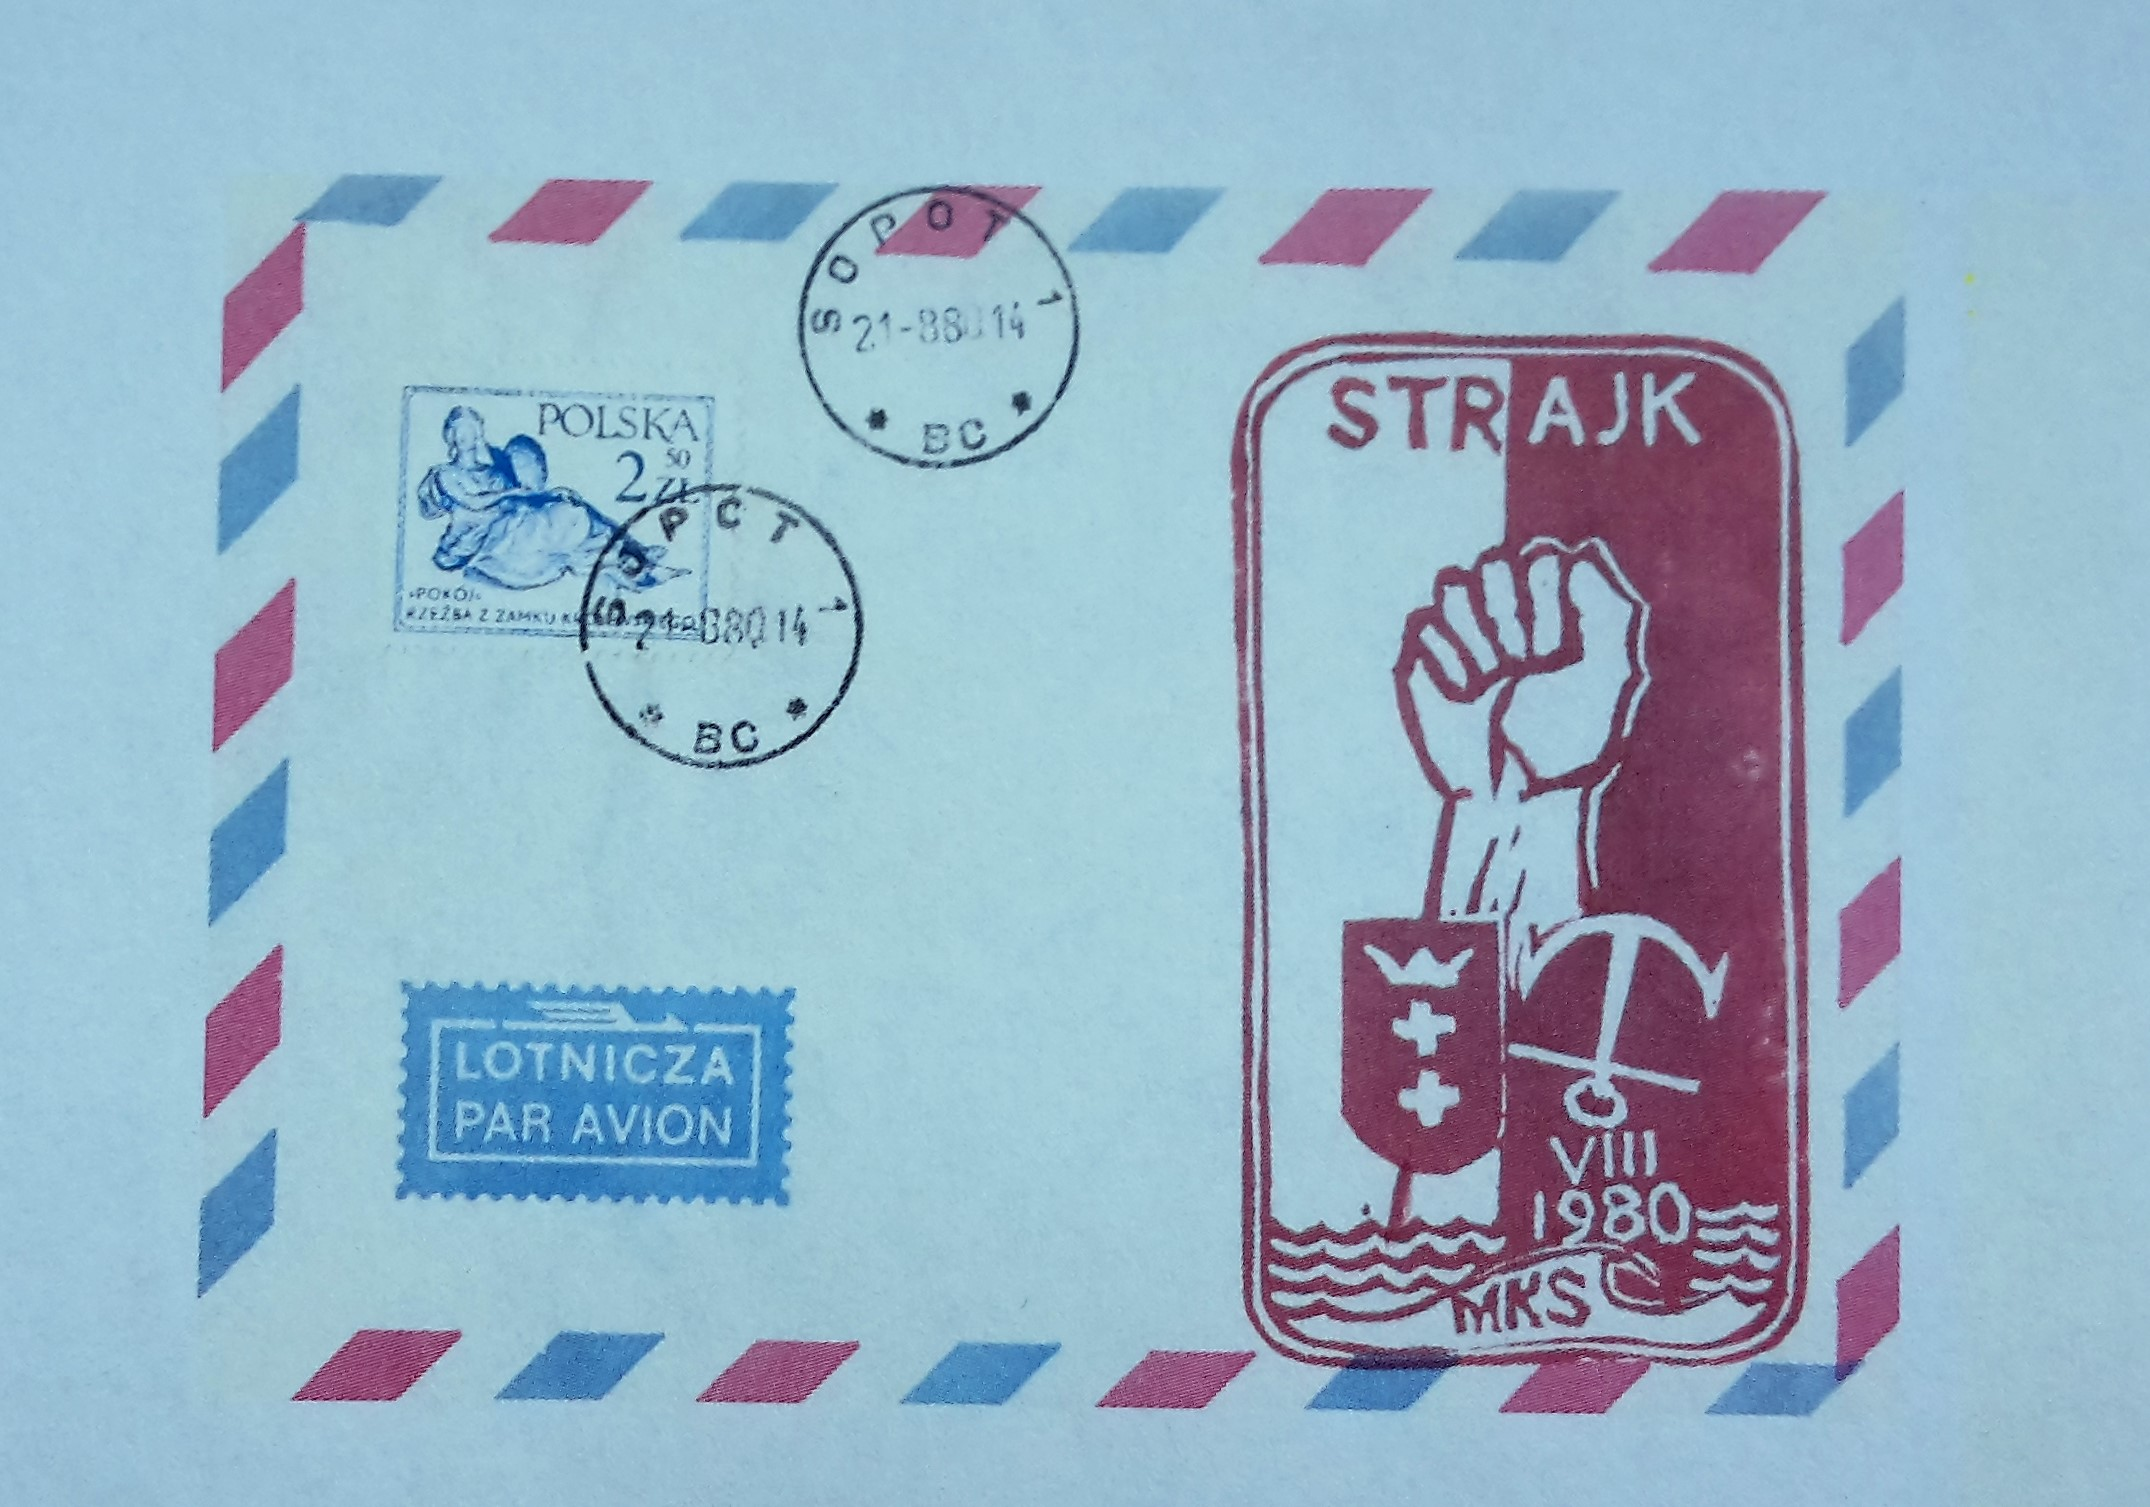 Envelope with a copy of the stamp created by Józef Figiela during the strikes in August 1980 in the Gdansk Shipyard.